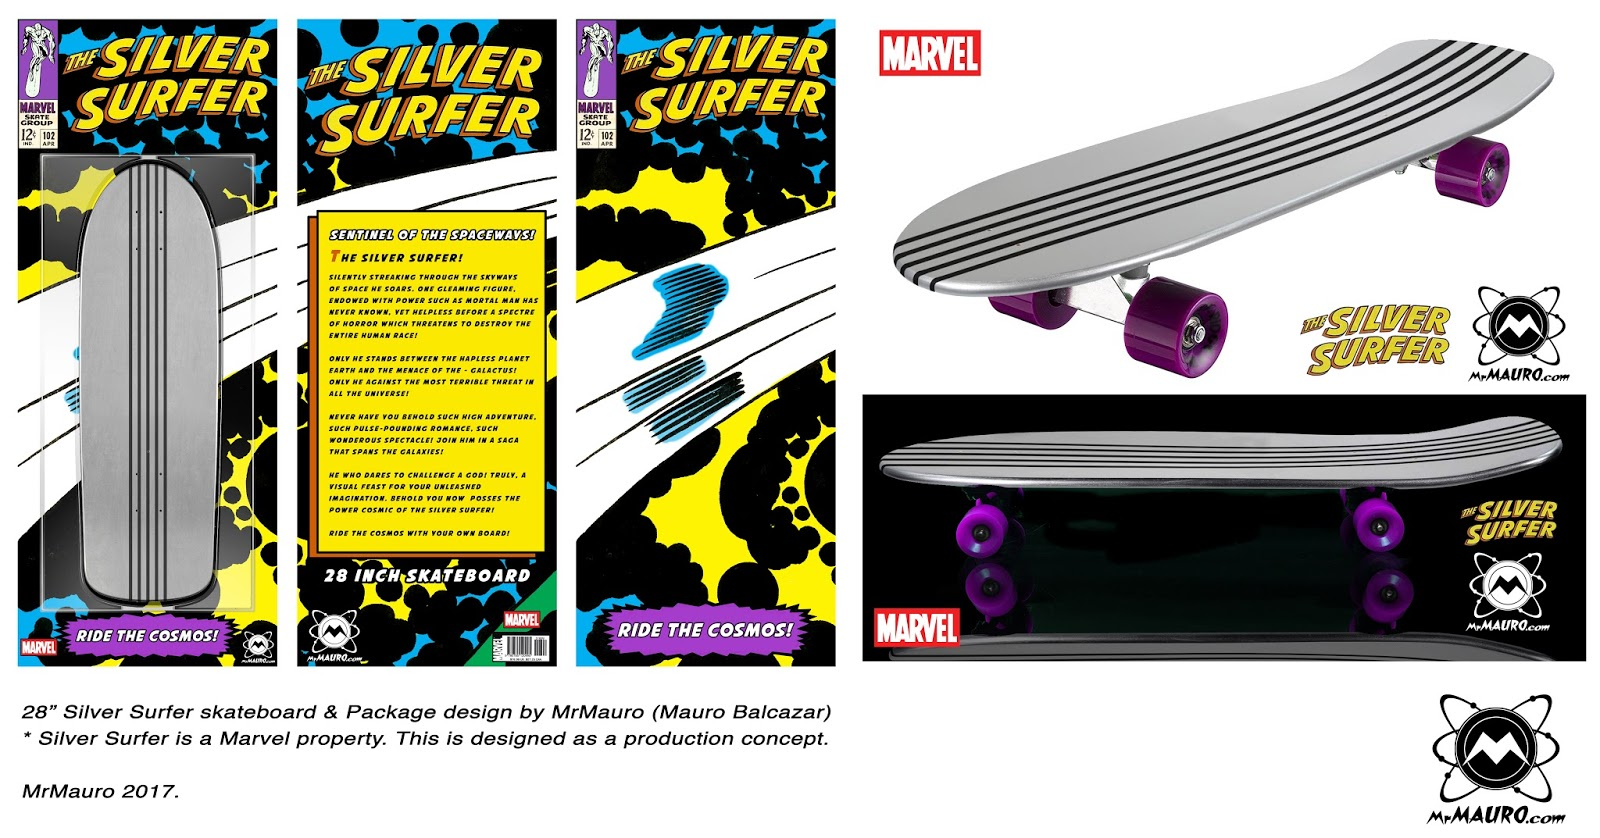 Mauro42: The Silver Surfer Skateboard!